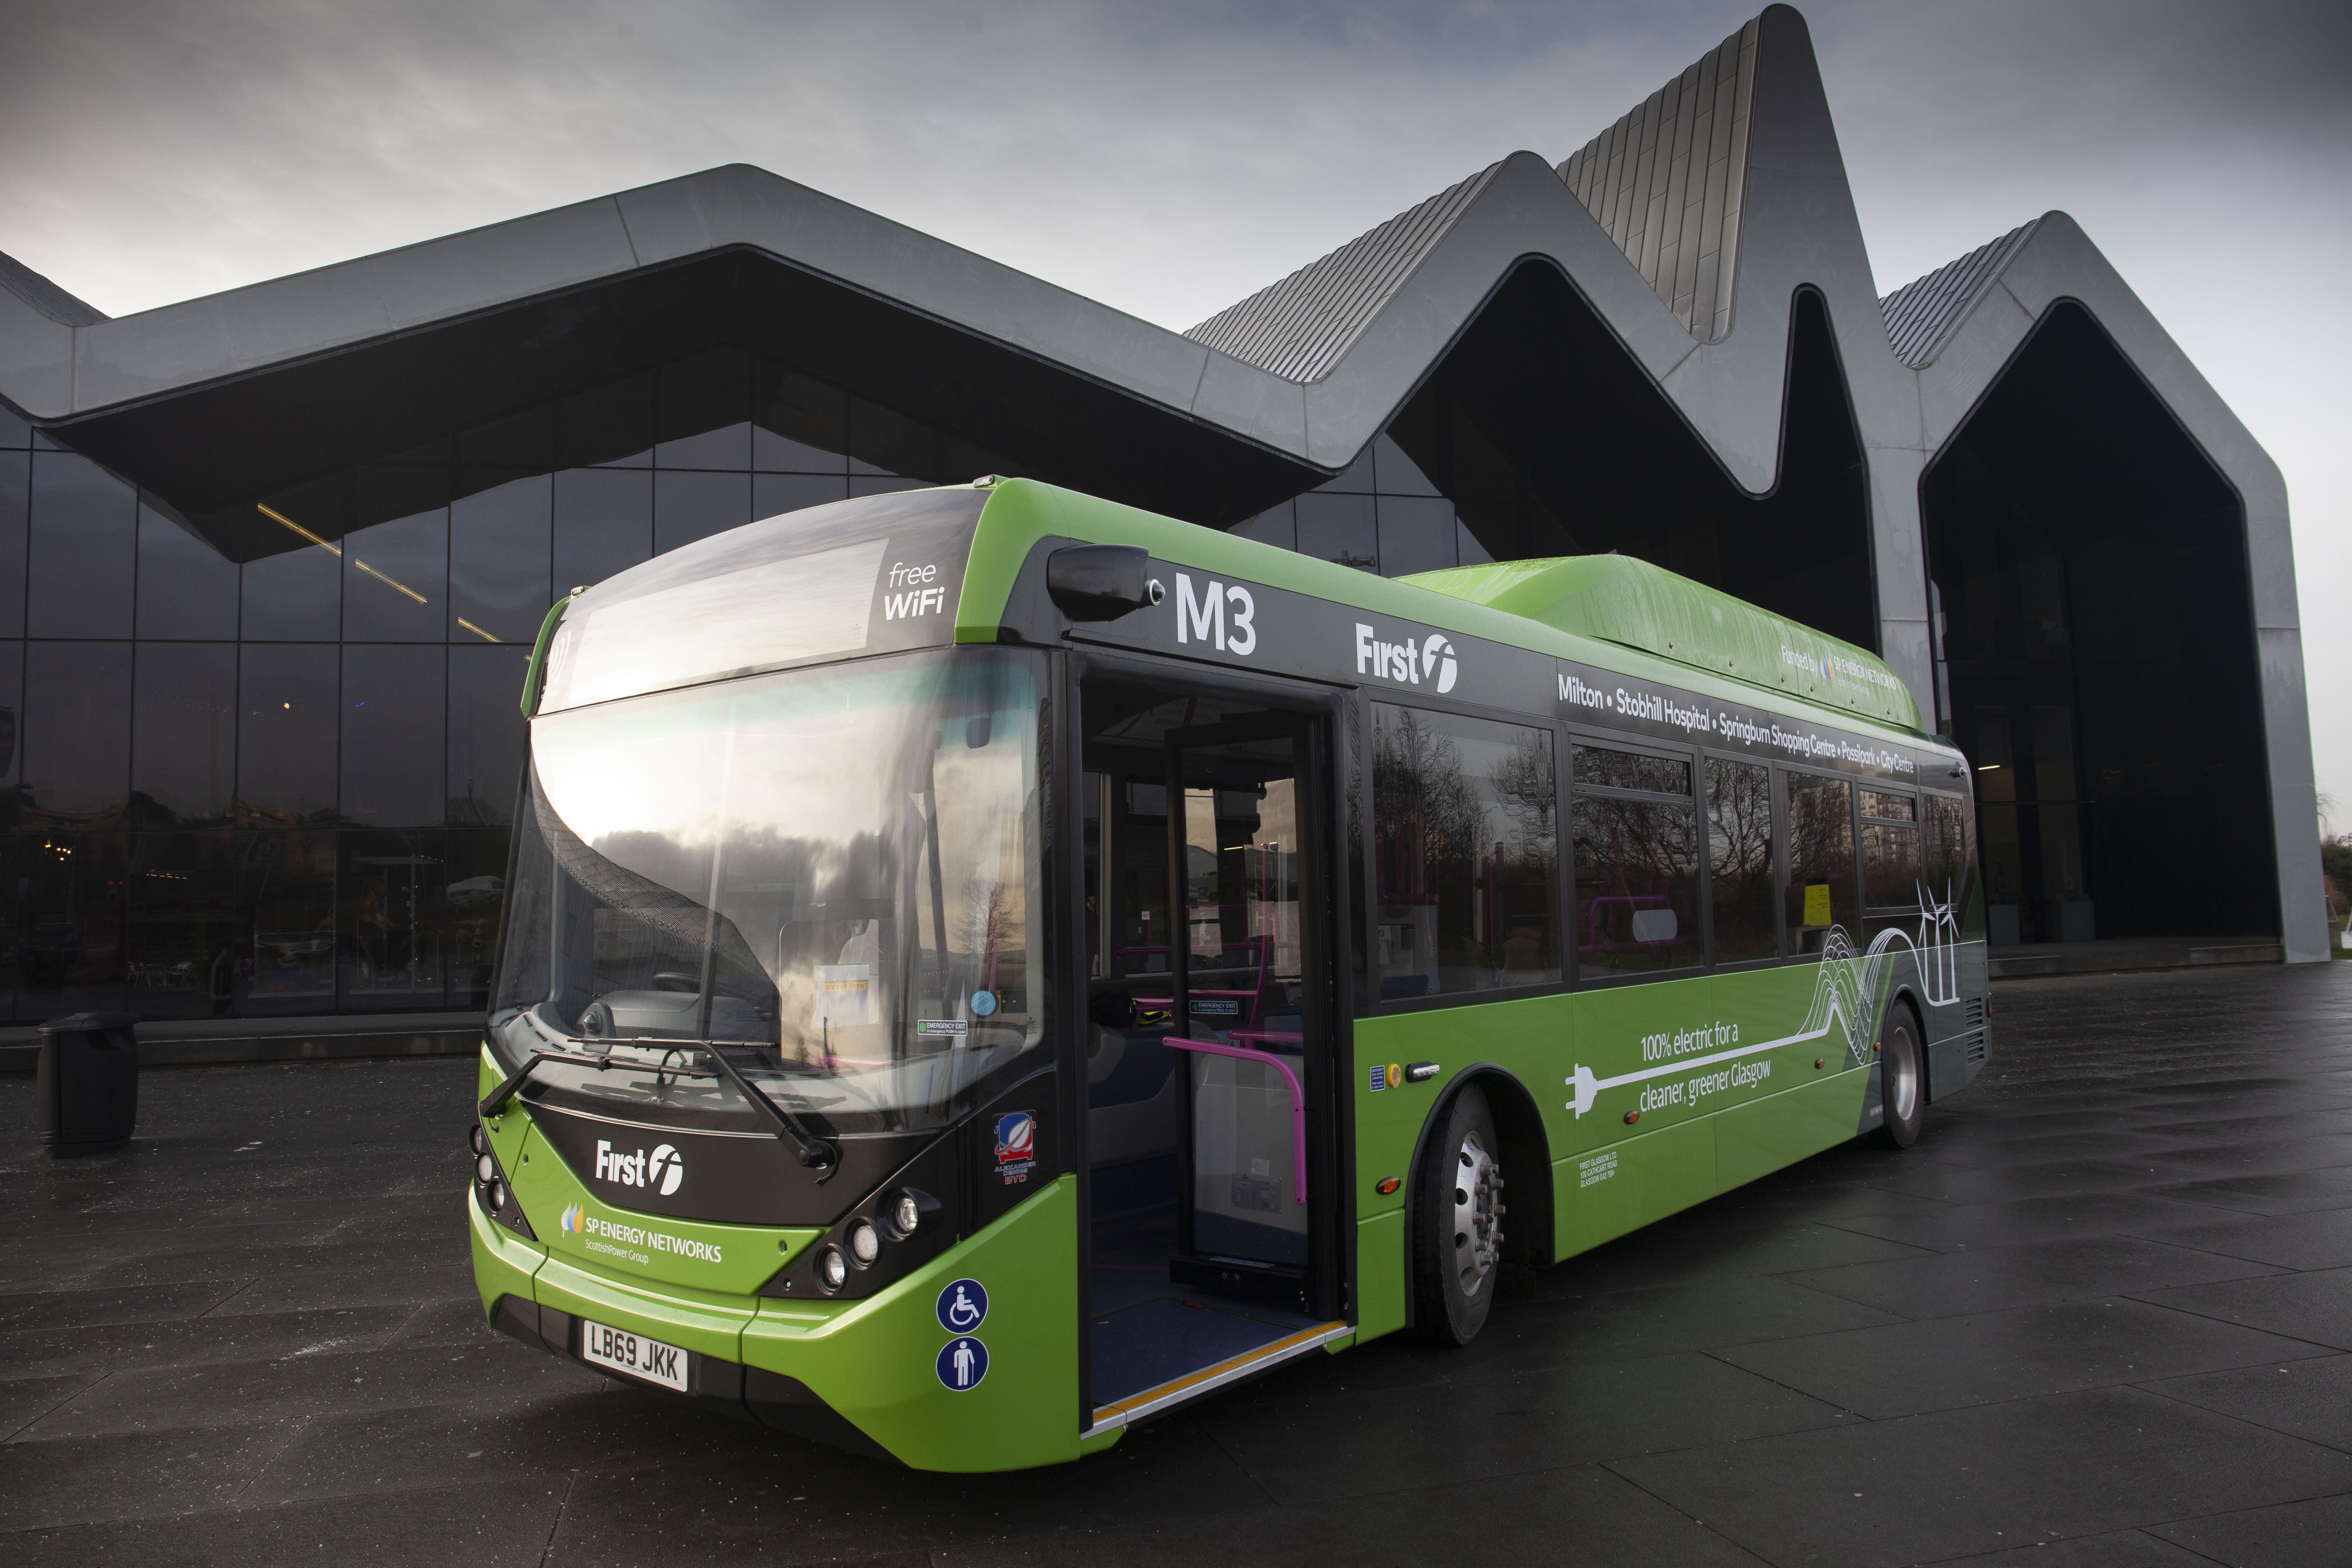 Electric buses return to Glasgow for first time in more than 50 years